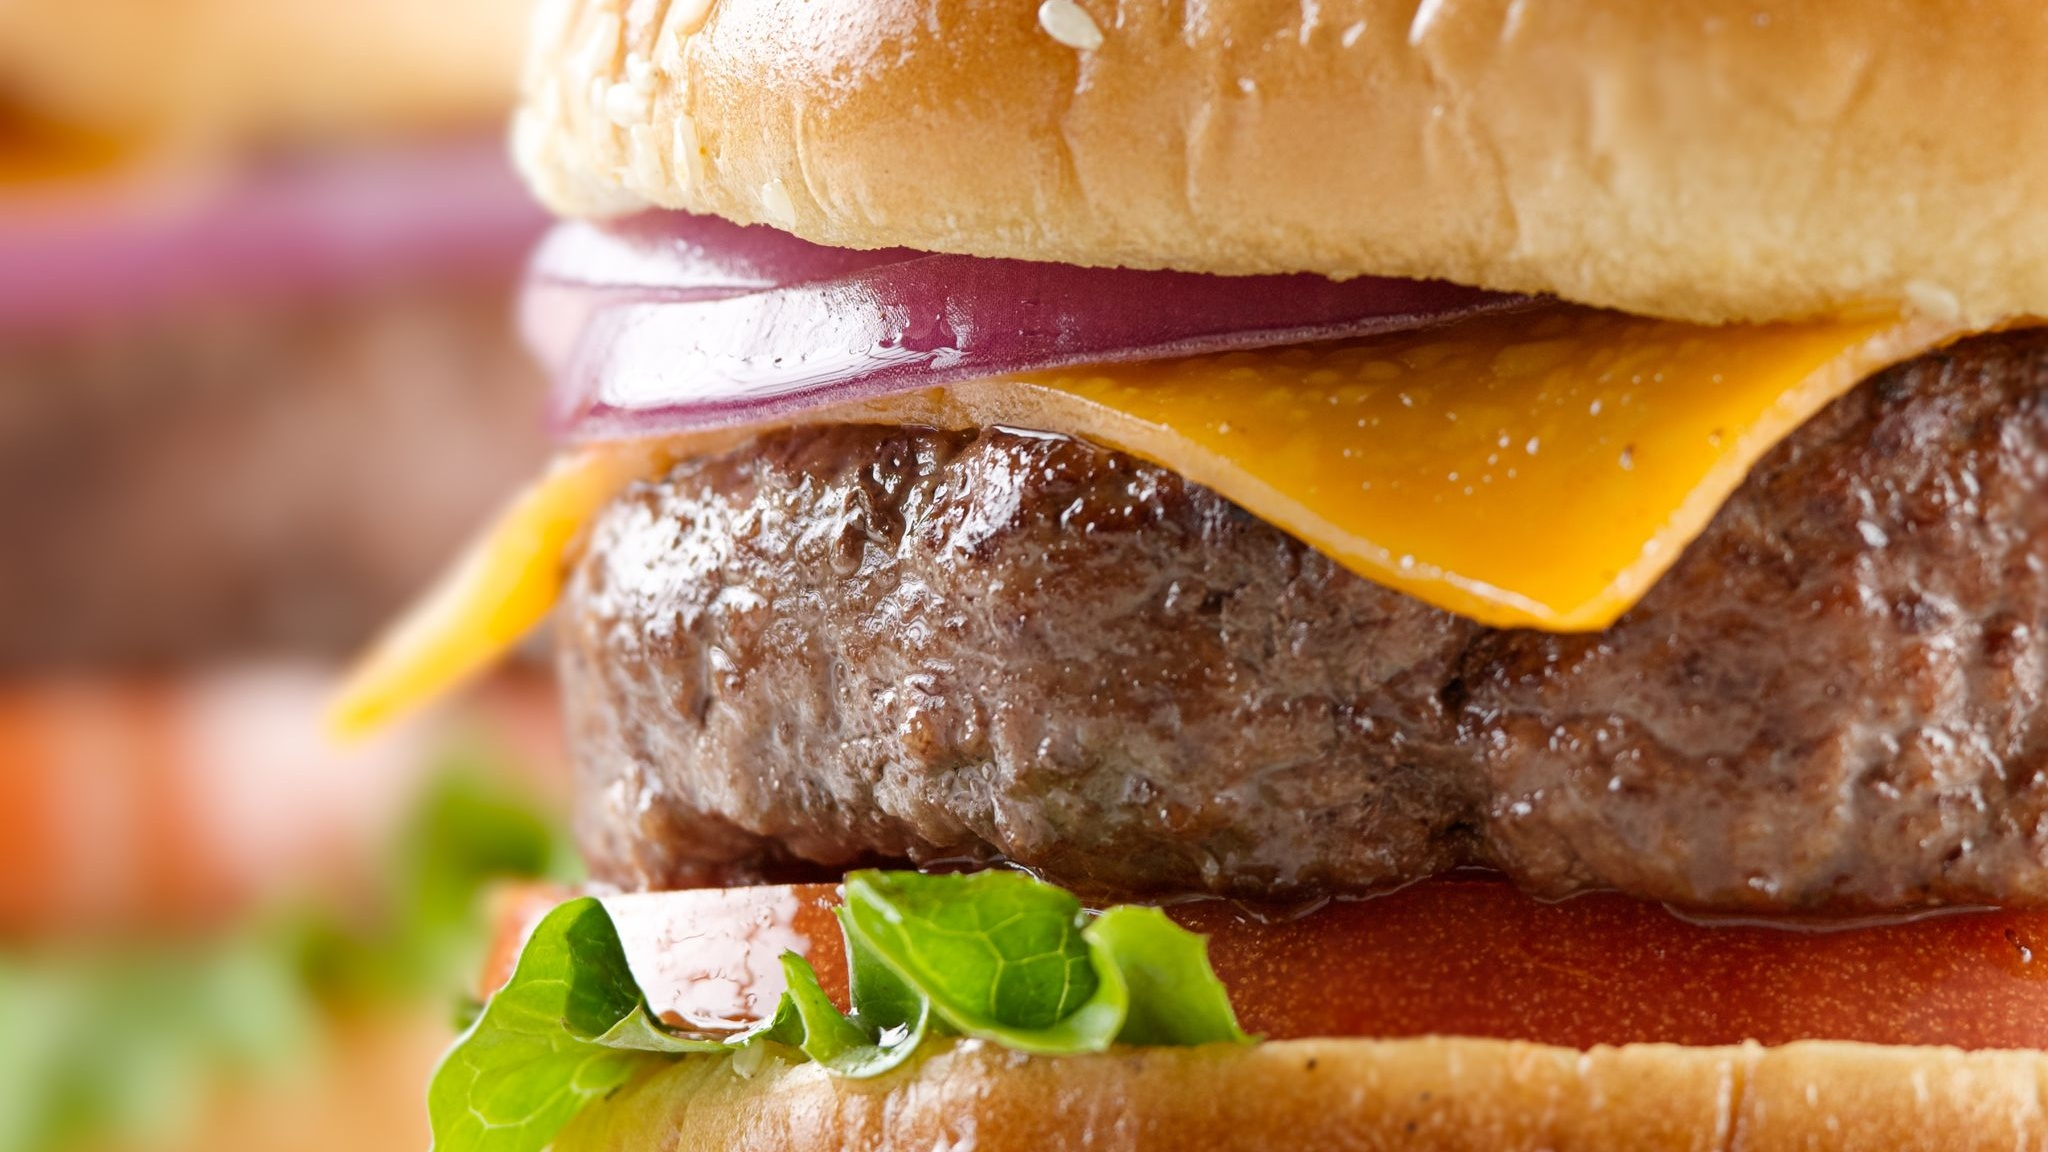 Top 10 Best Burger Chains in the US